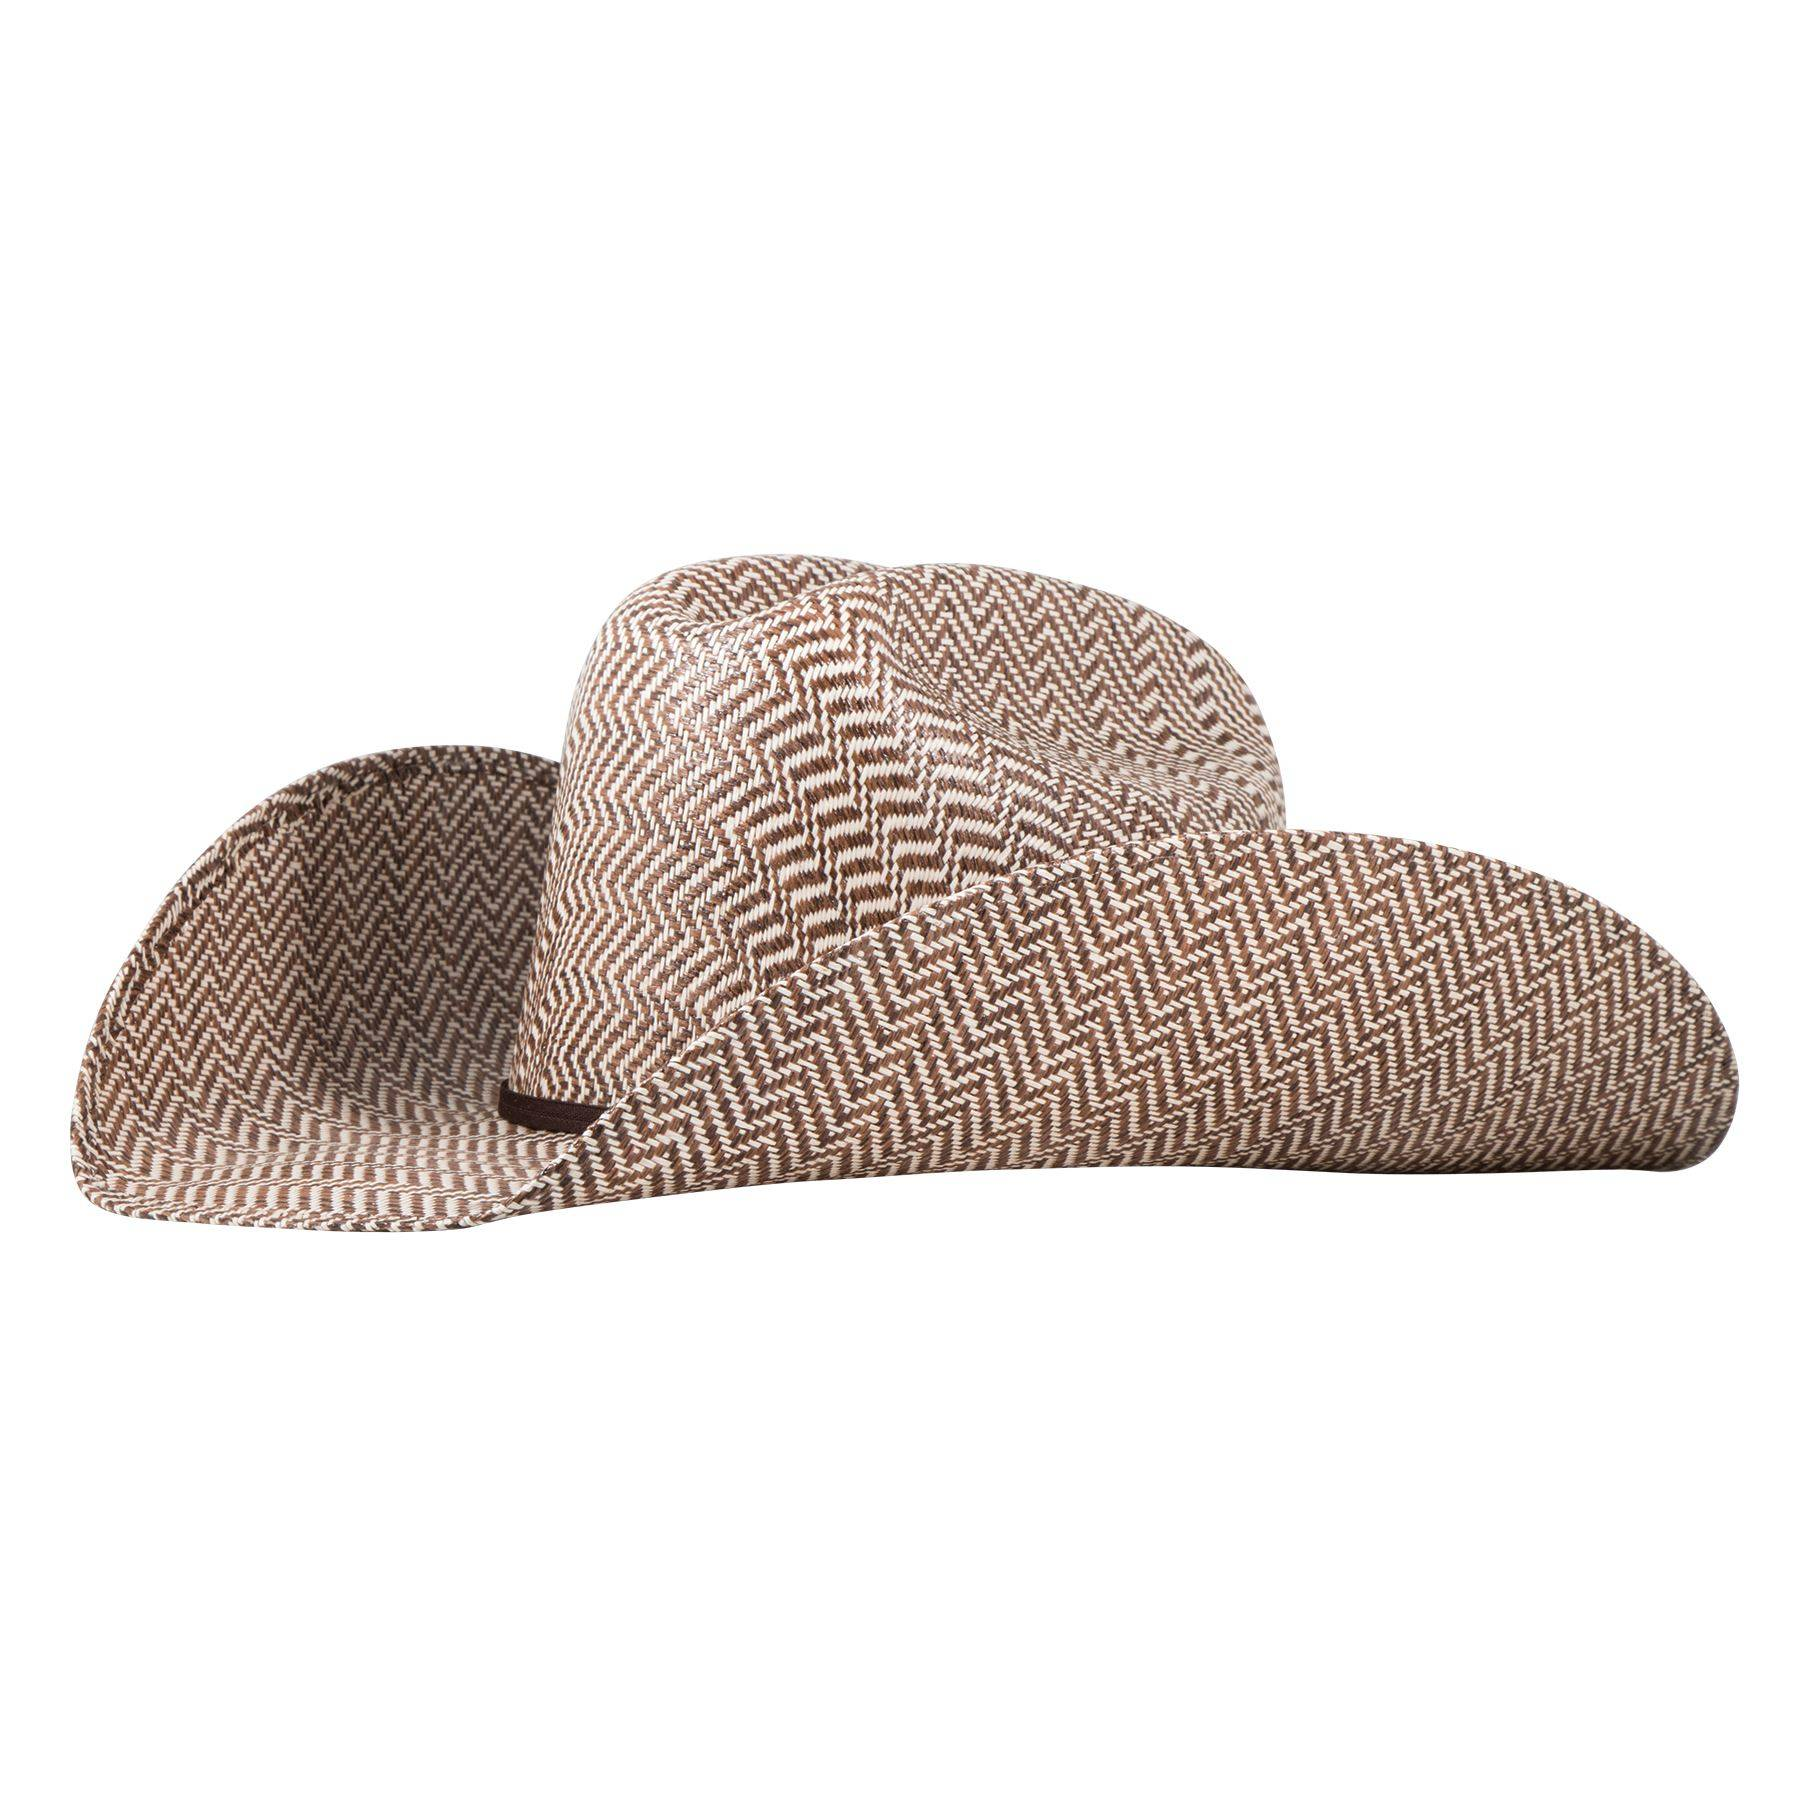 Rodeo King Hereford Rancher Straw Cowboy Hat